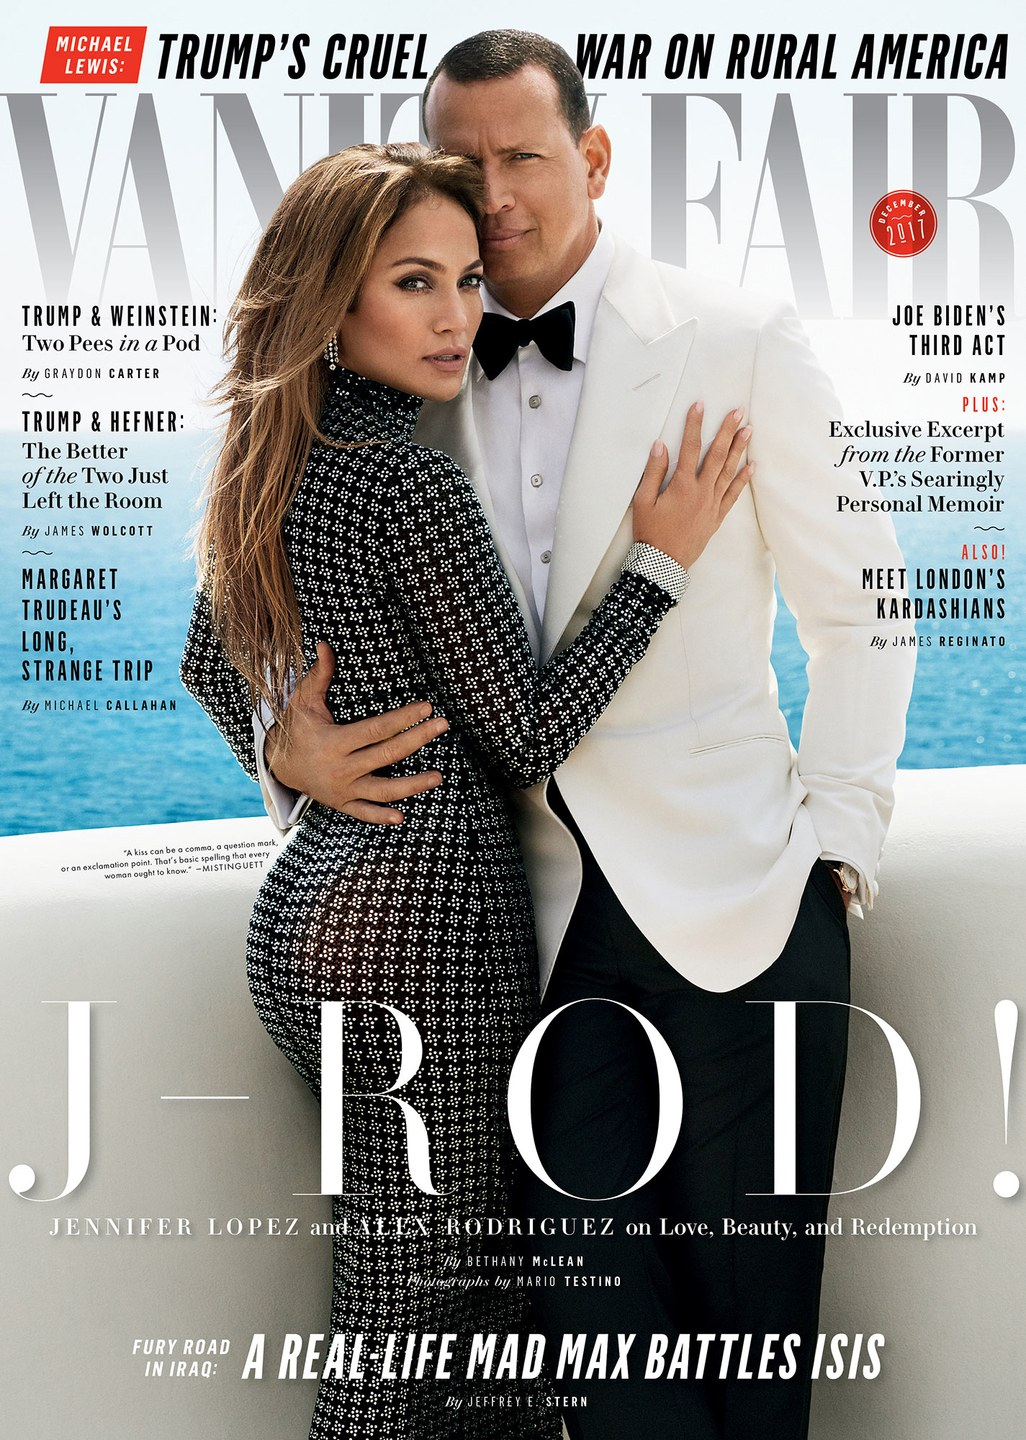 JLO & ALEX RODRIGUEZ VANITY FAIR COVER